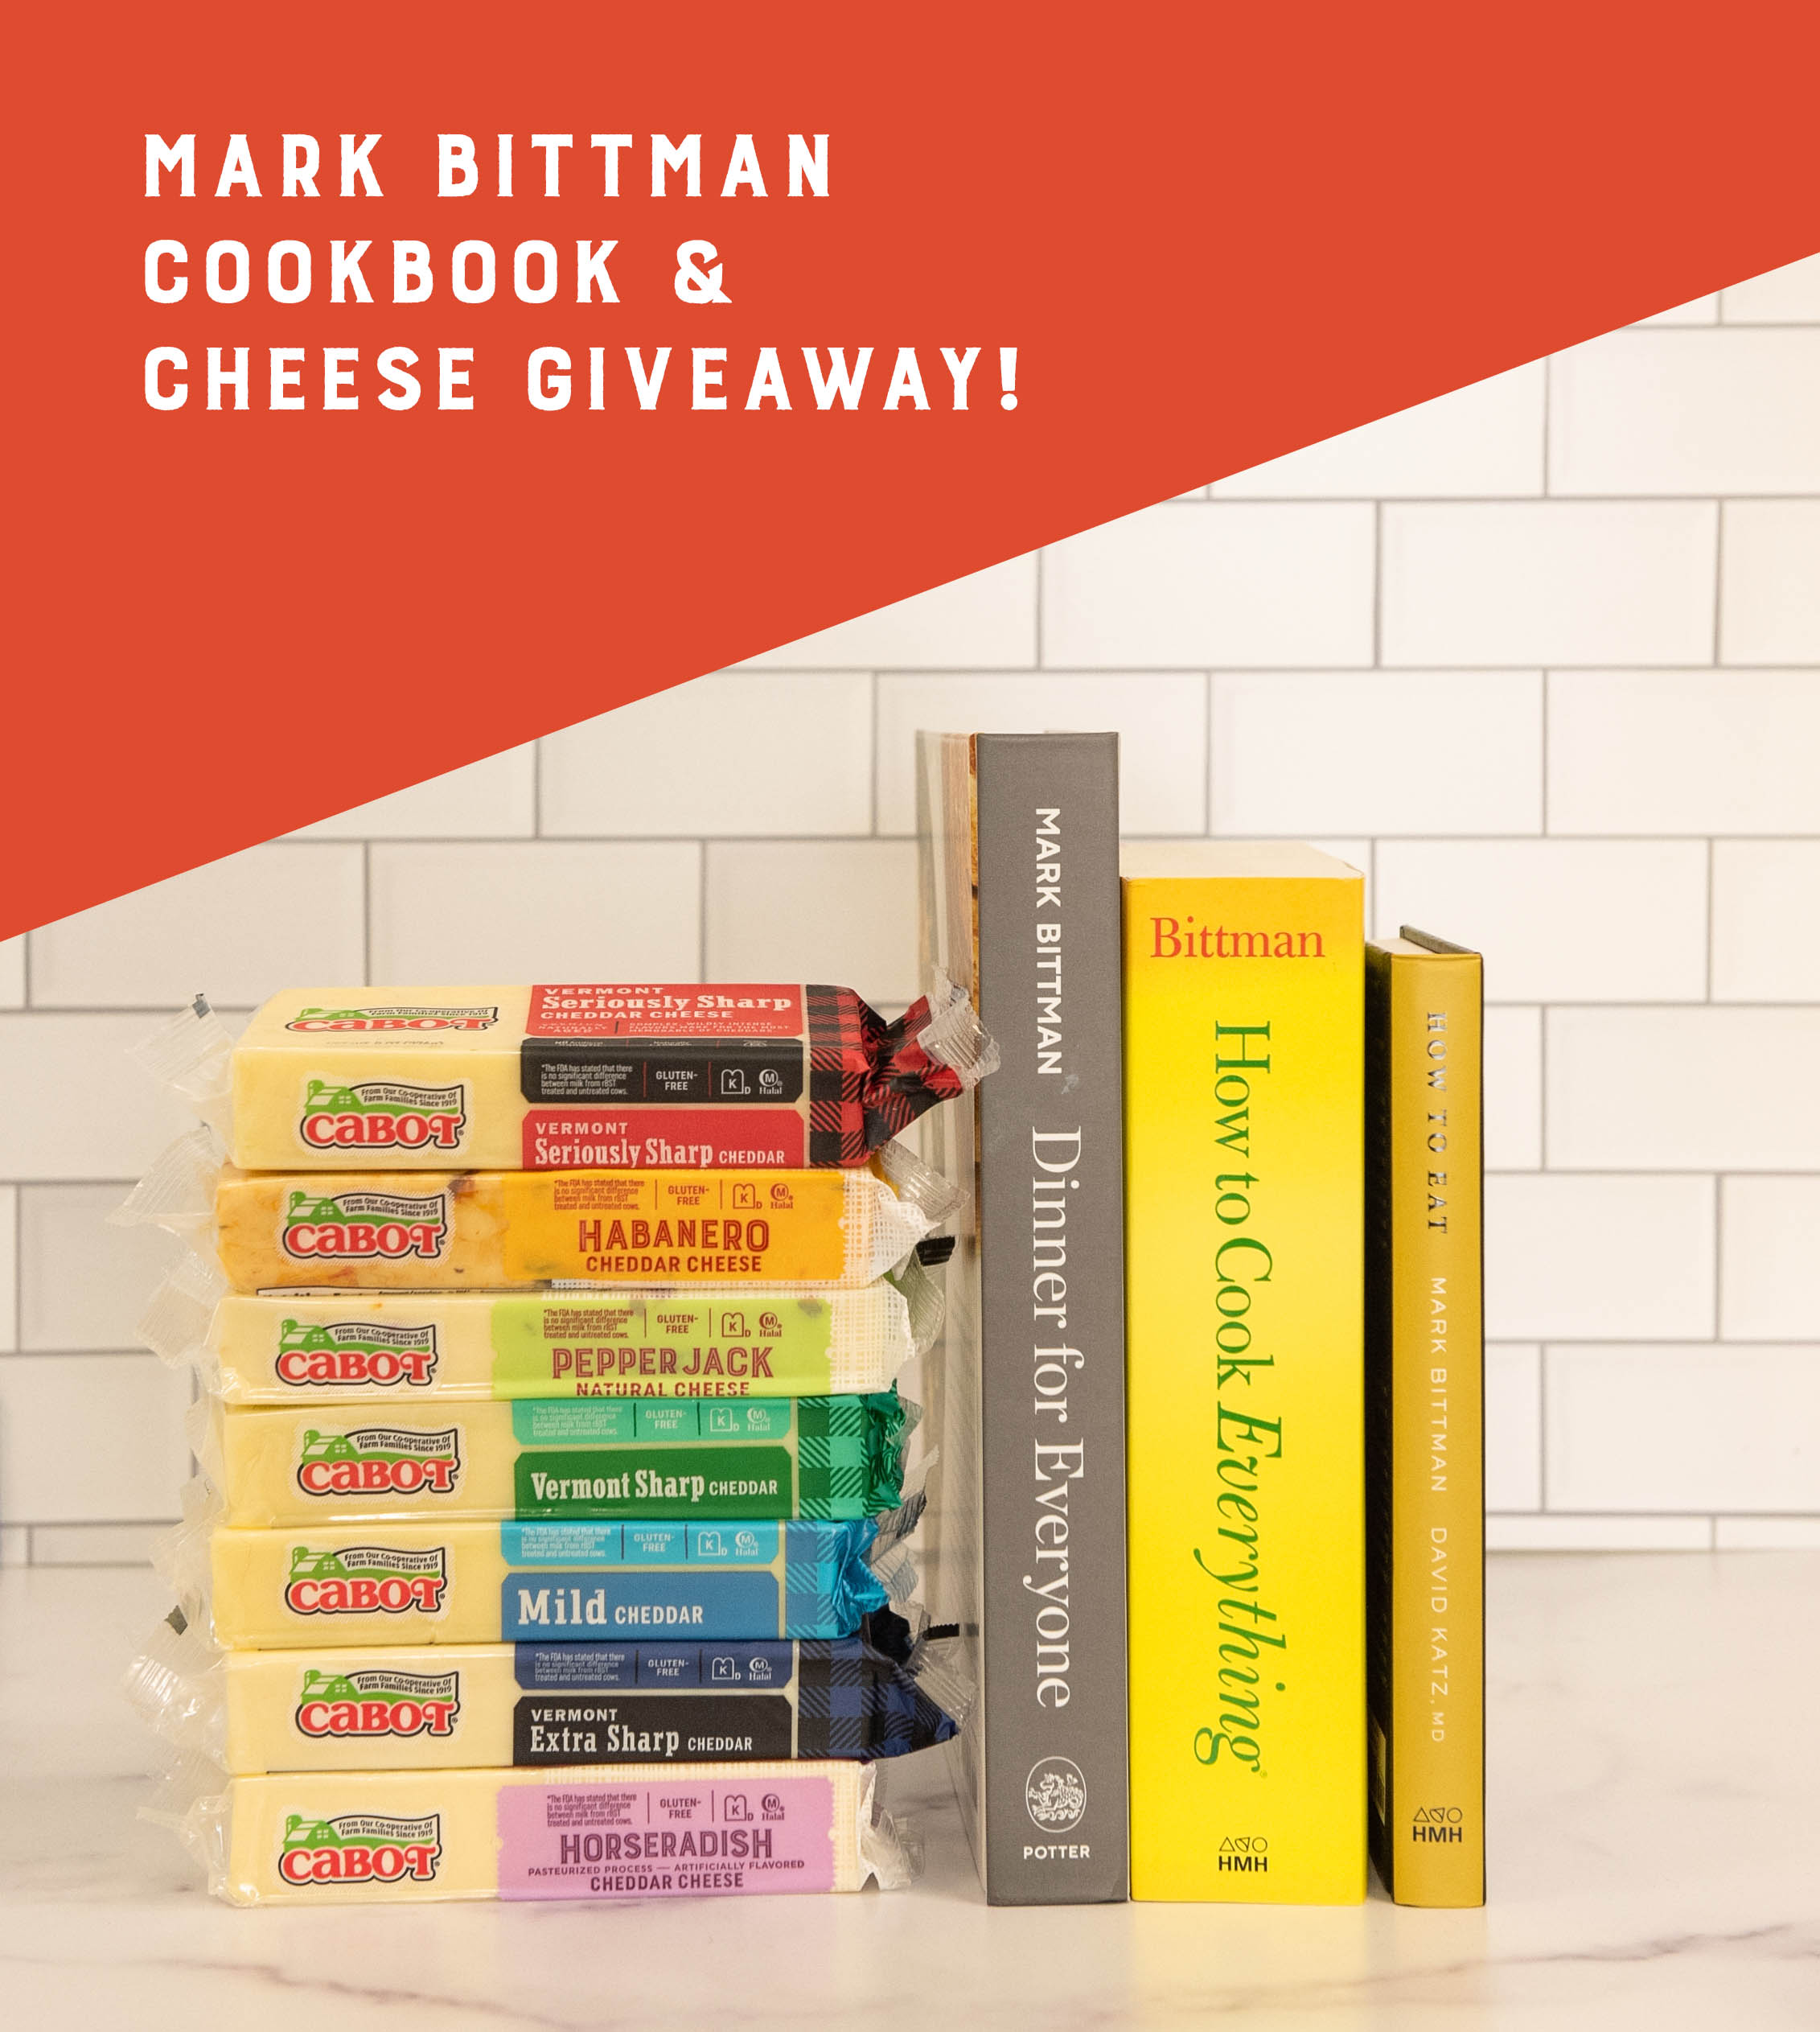 Mark Bittman Cookbook Giveaway